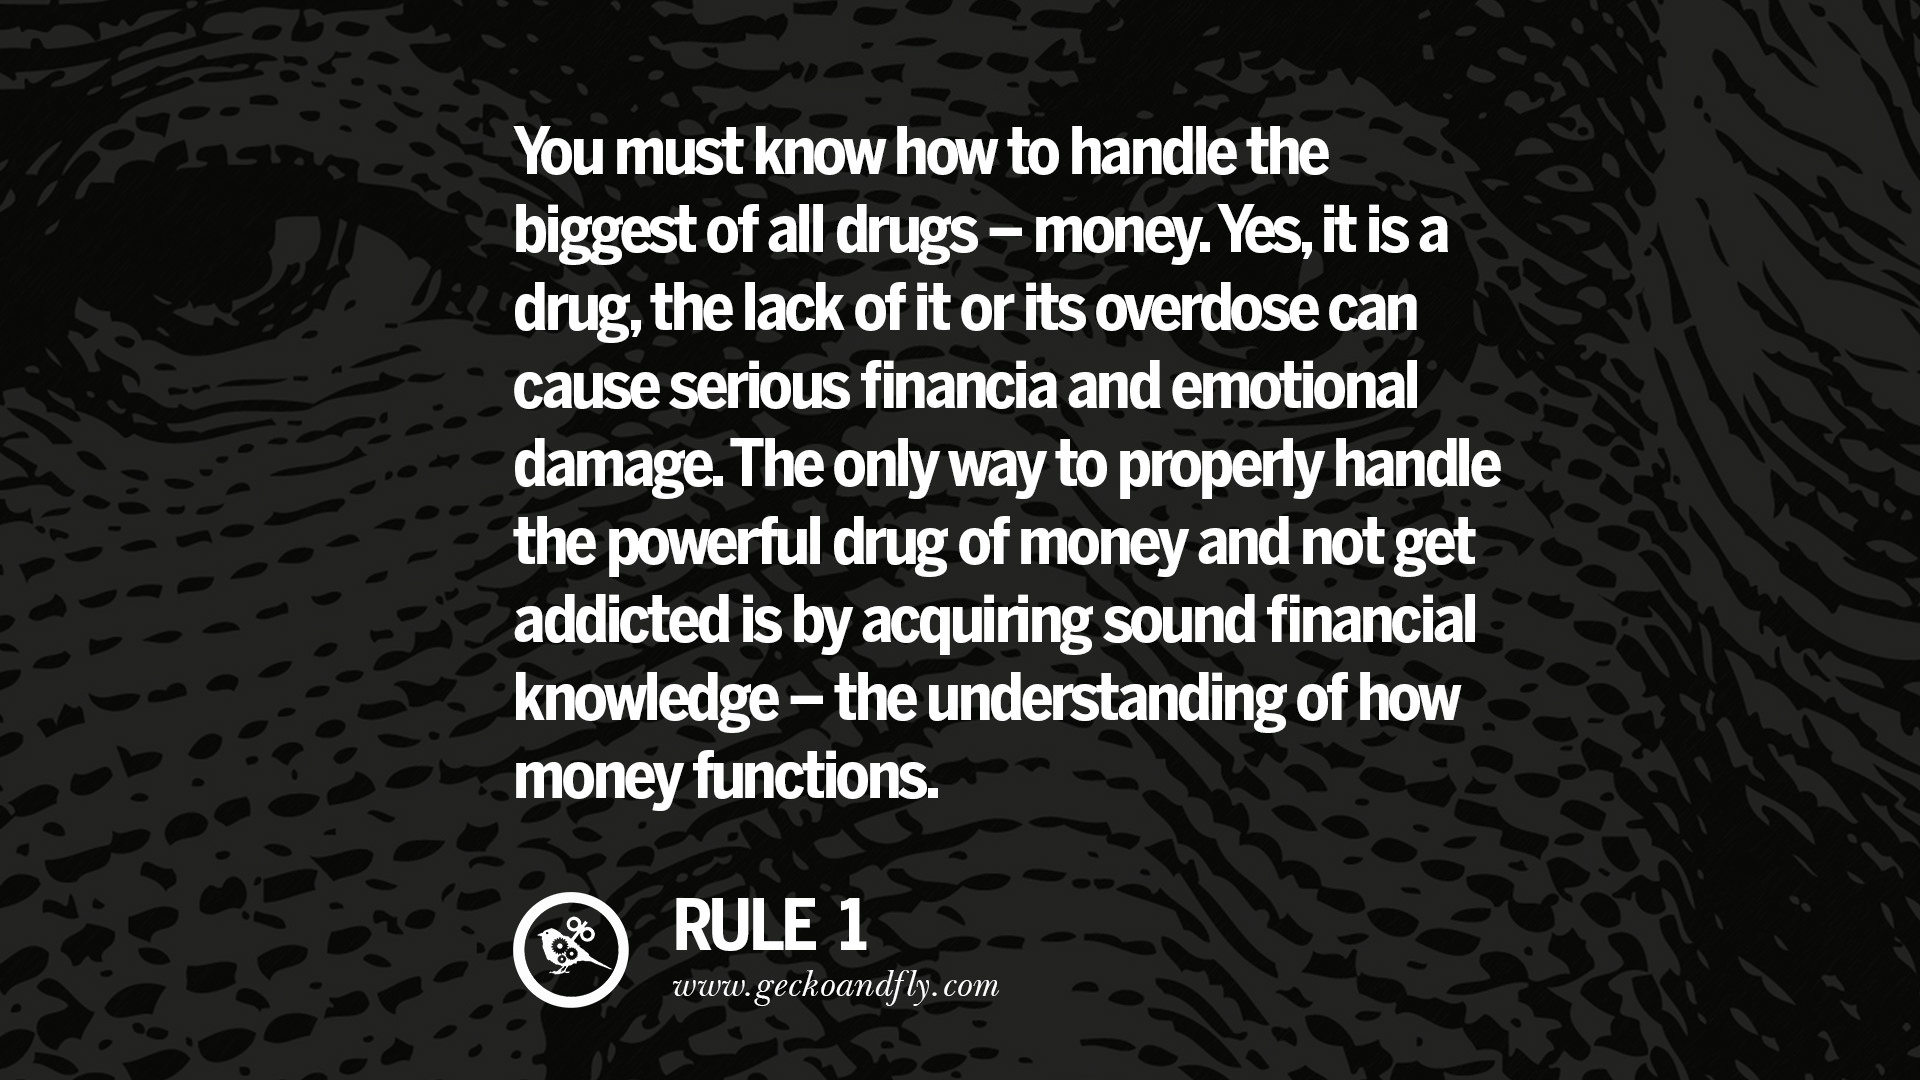 Drug Quotes 10 Golden Rules On Money & 20 Inspiring Quotes About Money